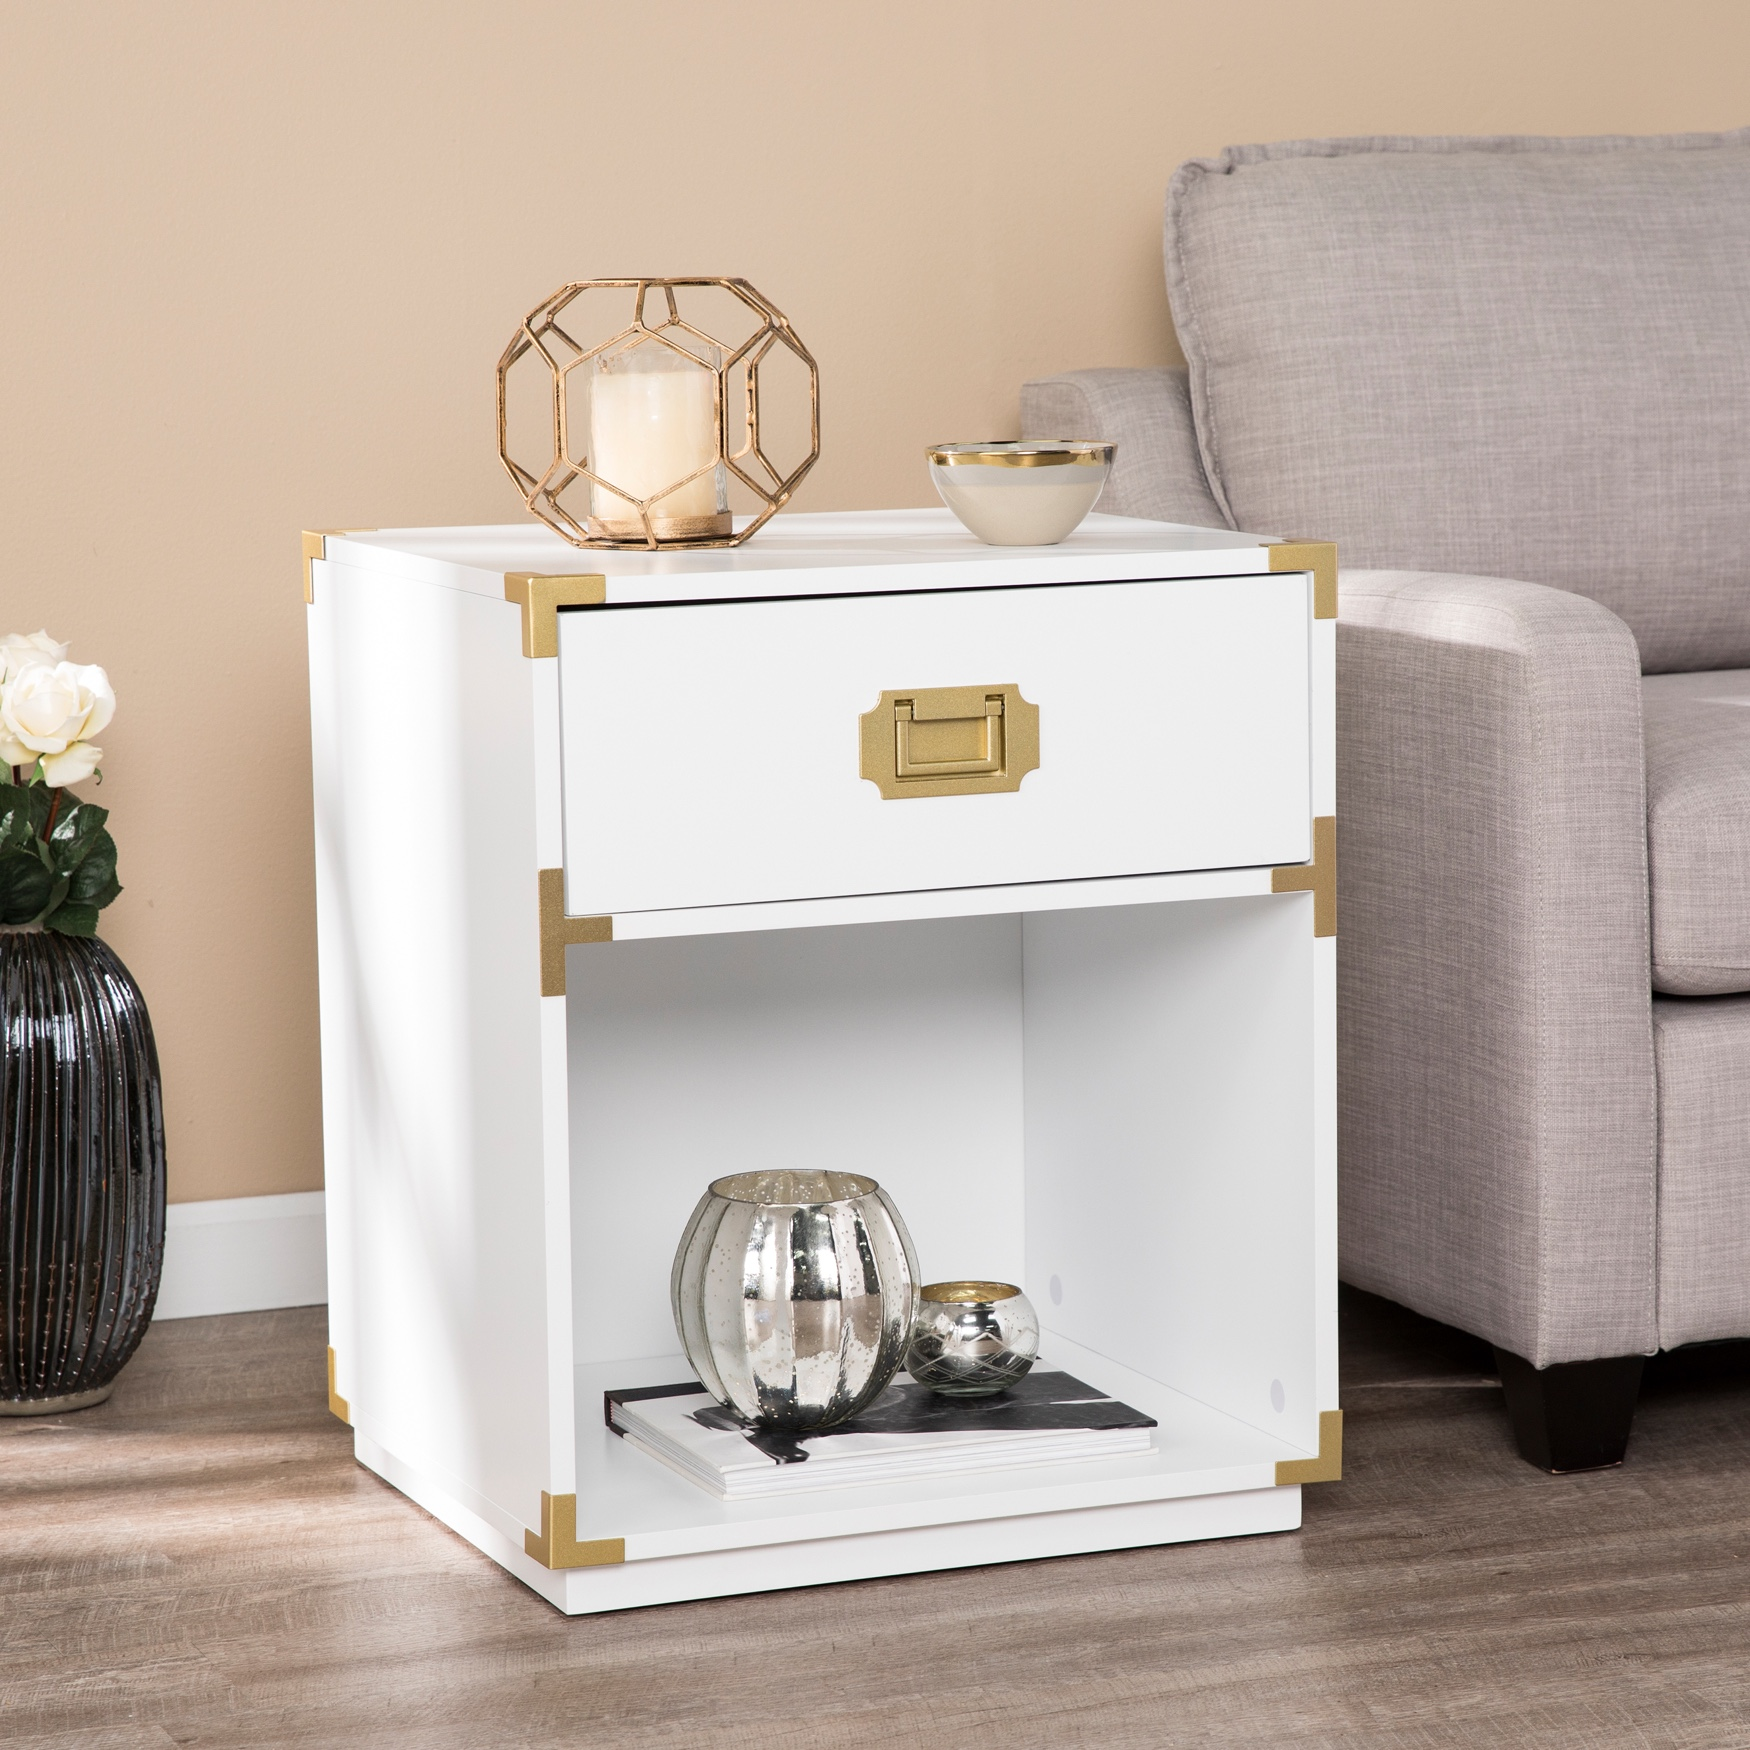 Campaign Tall Storage Side Table with Drawer, WHITE